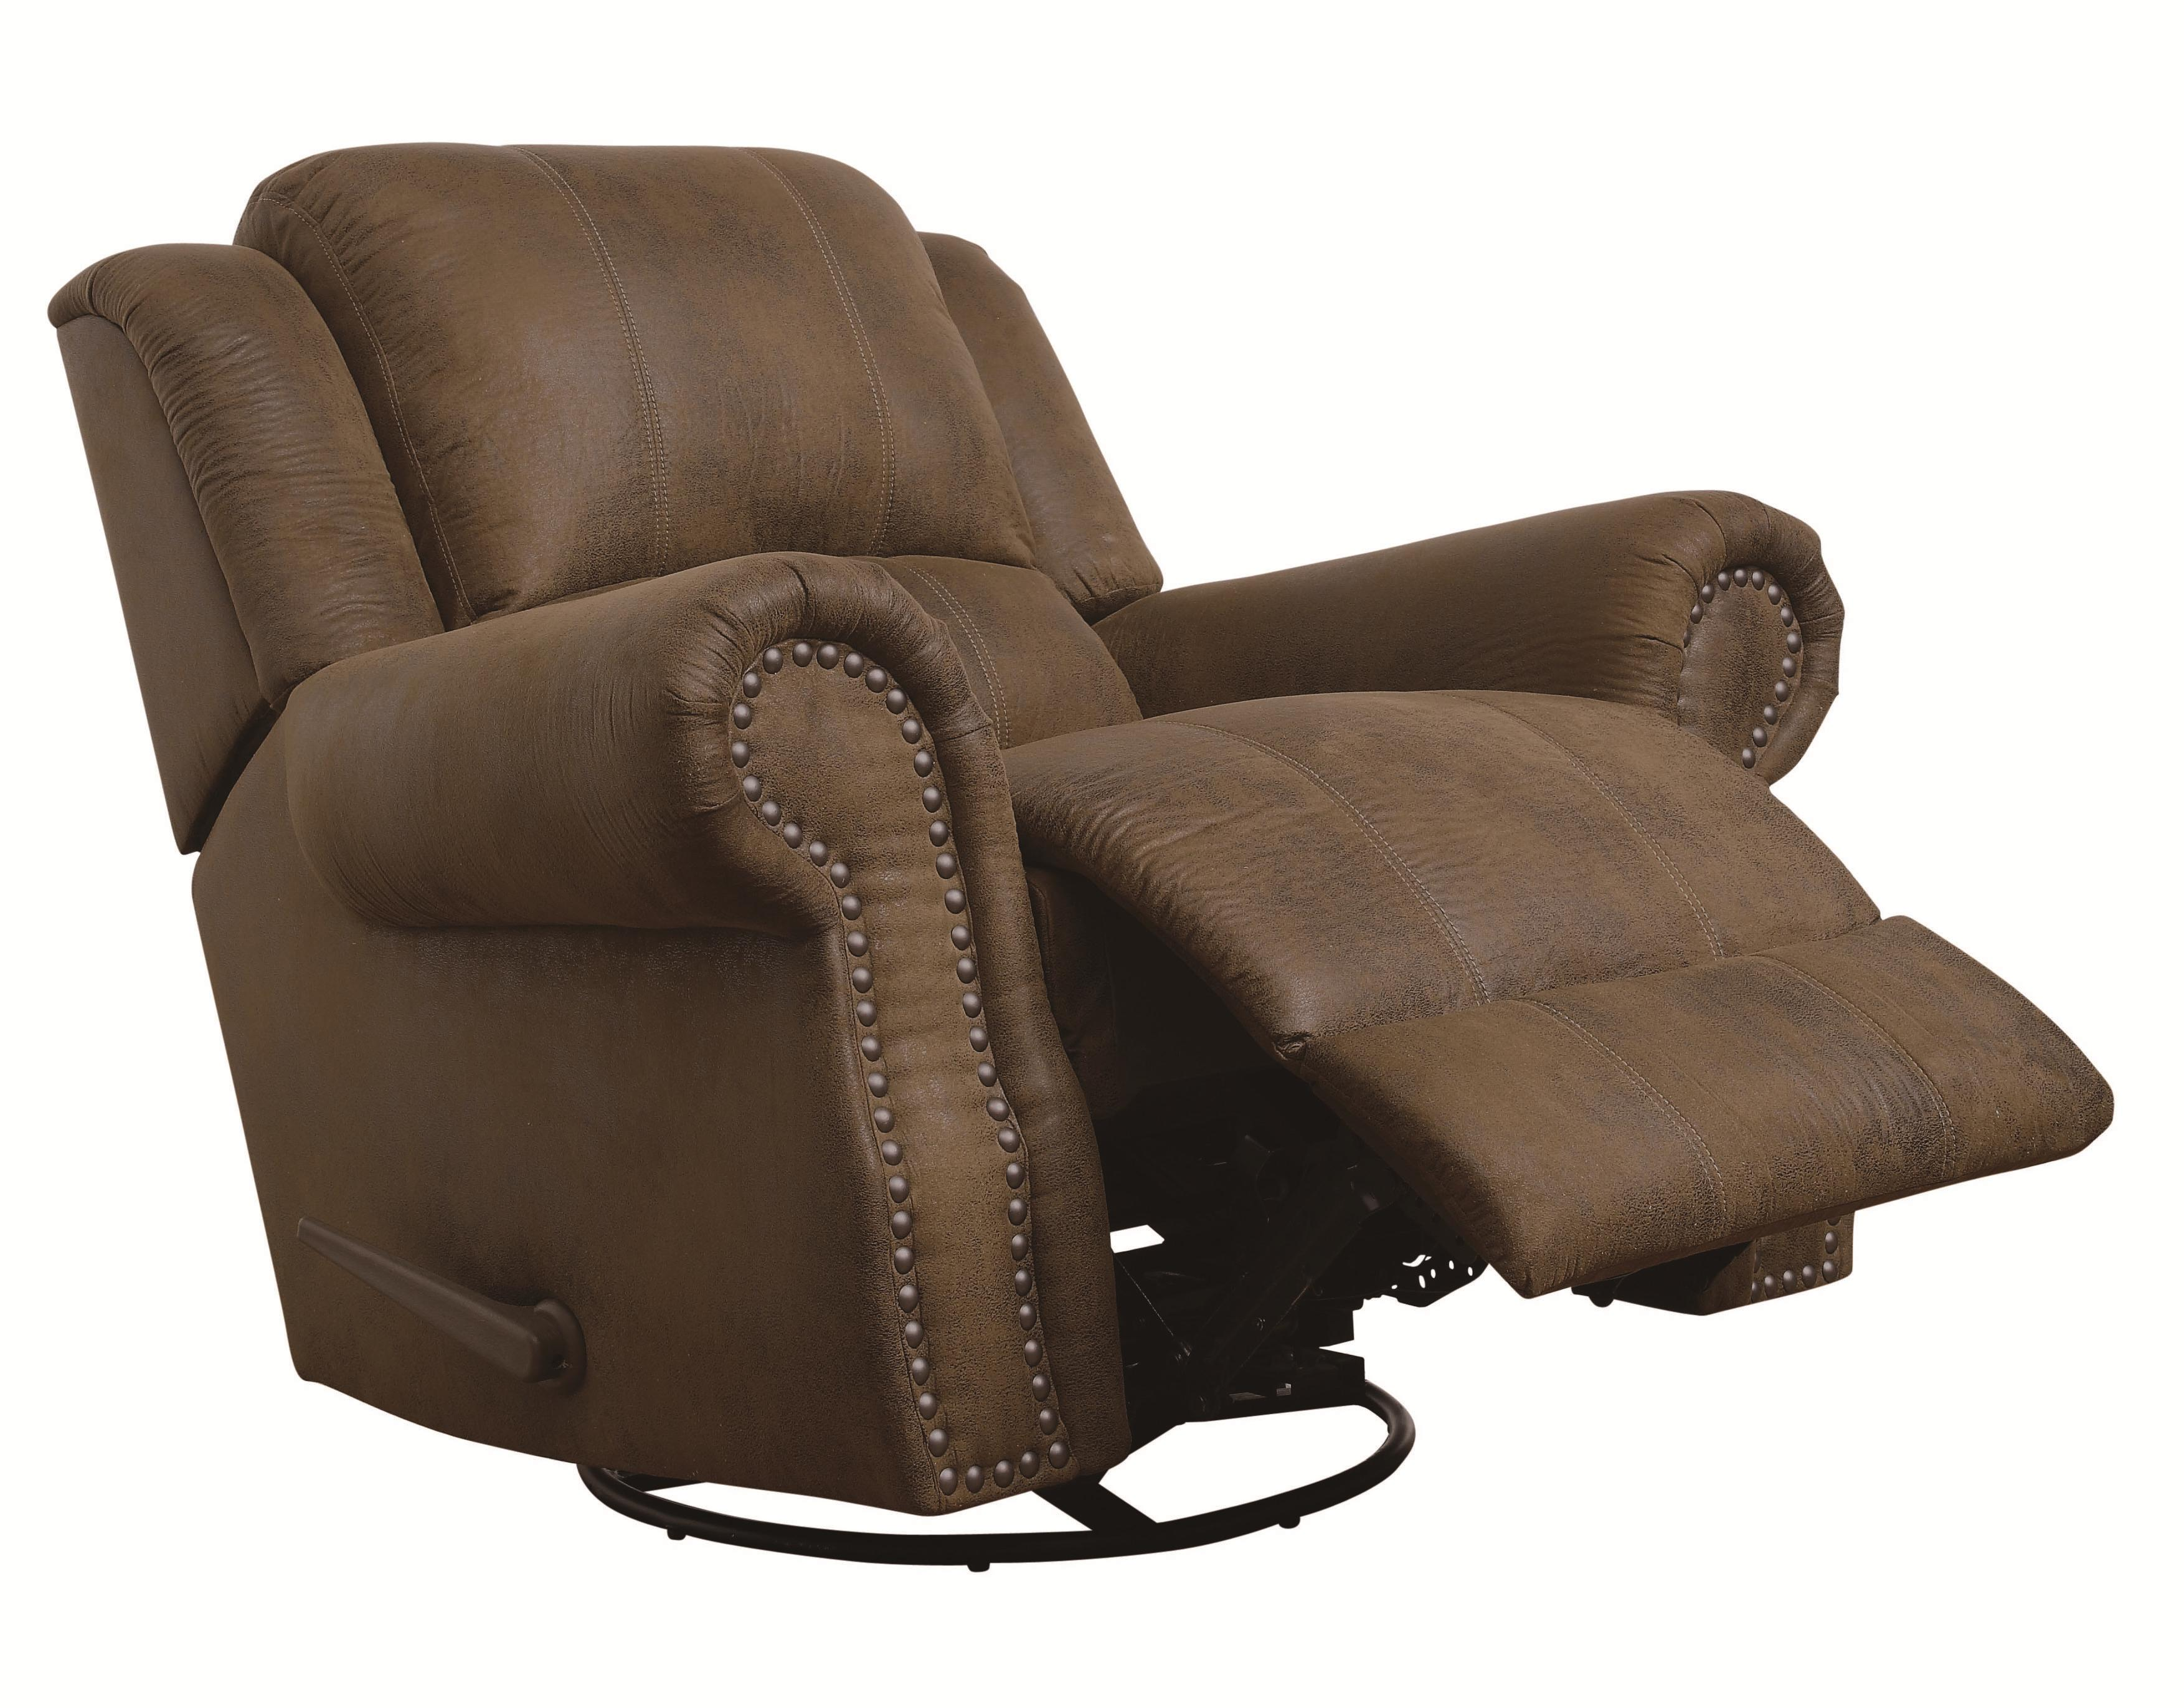 Sir Rawlinson Rocker Recliner with Swivel by Coaster at Northeast Factory Direct